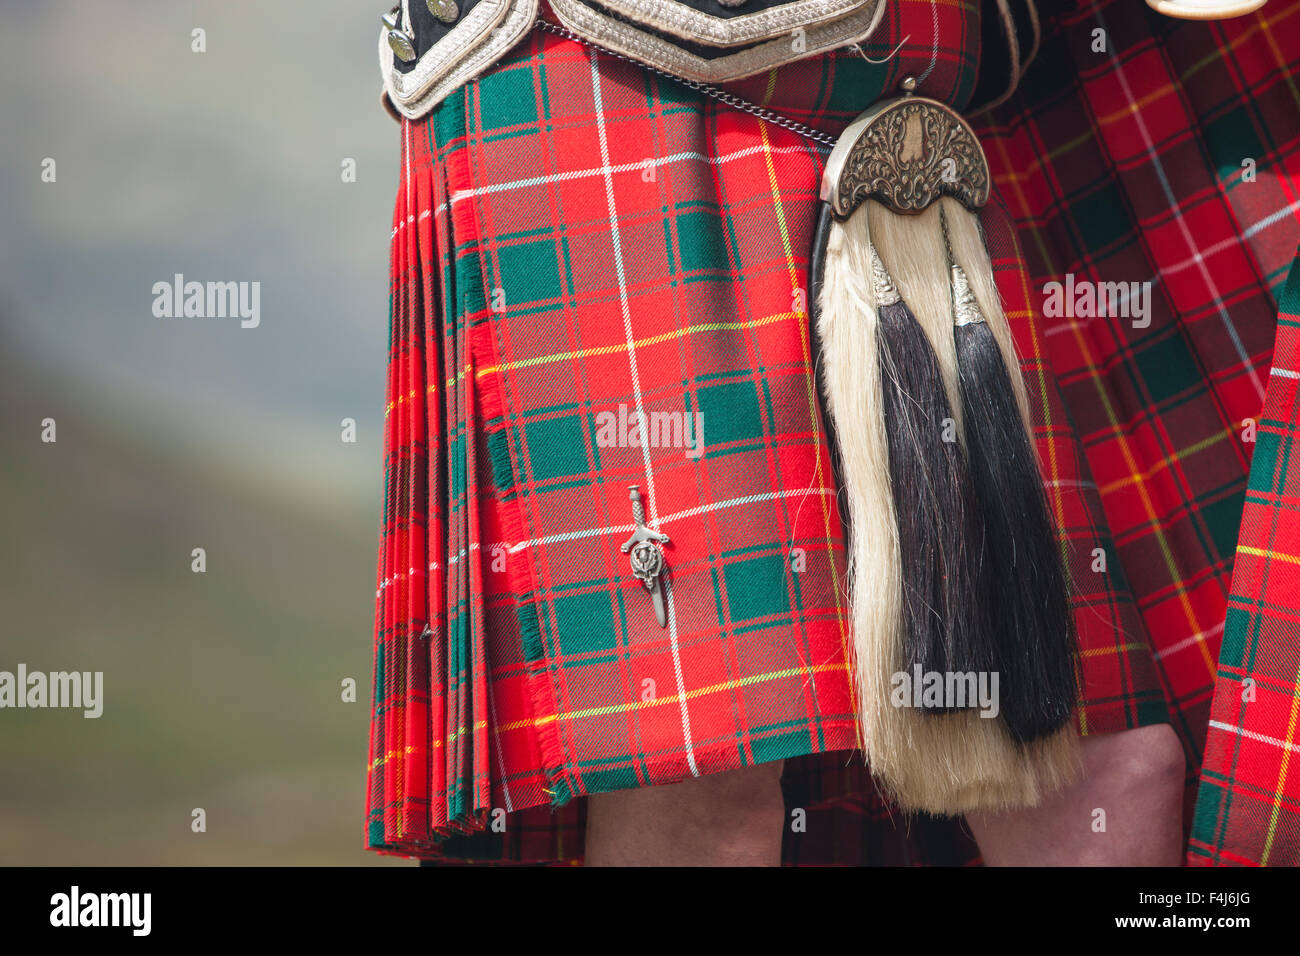 Scottish Piper Stock Photos & Scottish Piper Stock Images - Alamy